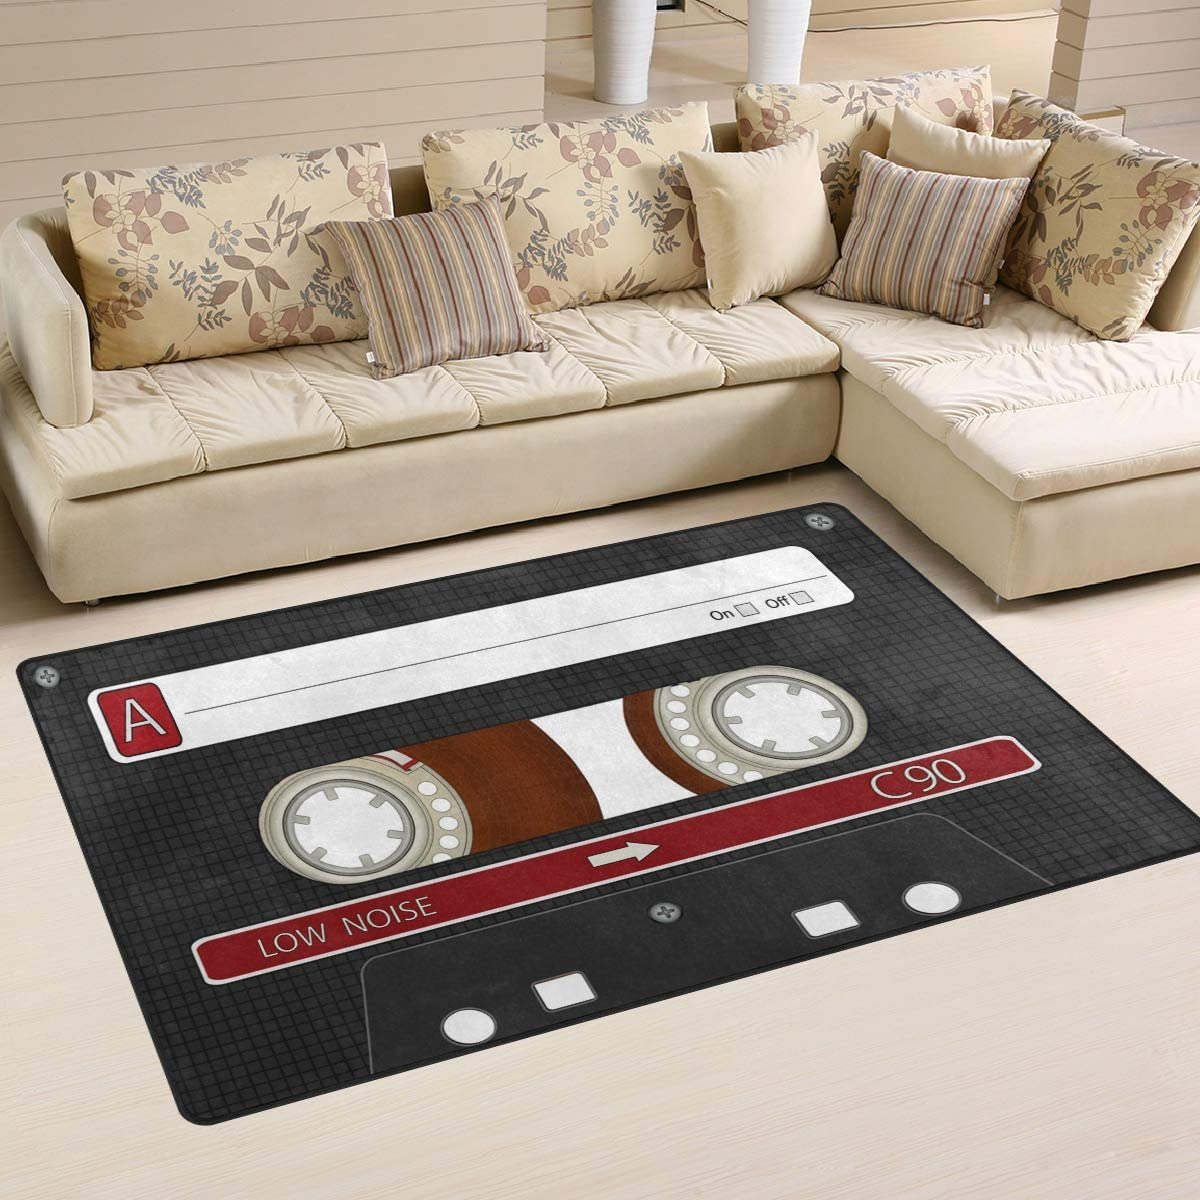 WOZO Audio Cassette Tape Music Area Rug Rugs Non-Slip Floor Mat Doormats Living Dining Room Bedroom Dorm 60 x 39 inches inches Home Decor